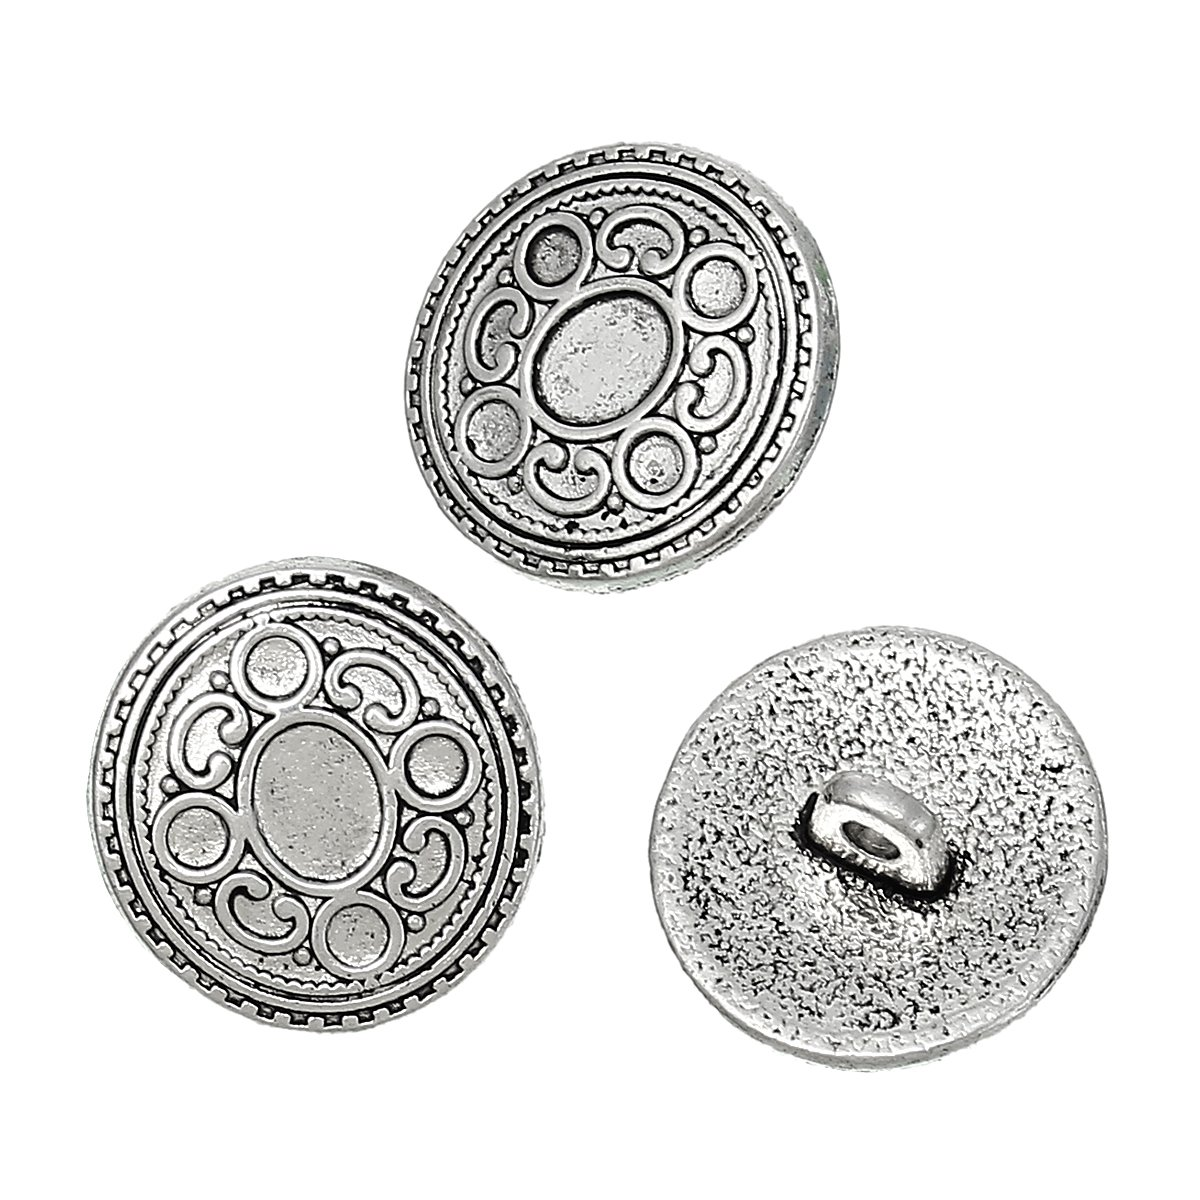 PEPPERLONELY Brand 10PC Antique Silver Shank Metal Button Round Single Hole Circle Pattern 17mm x 16.5mm